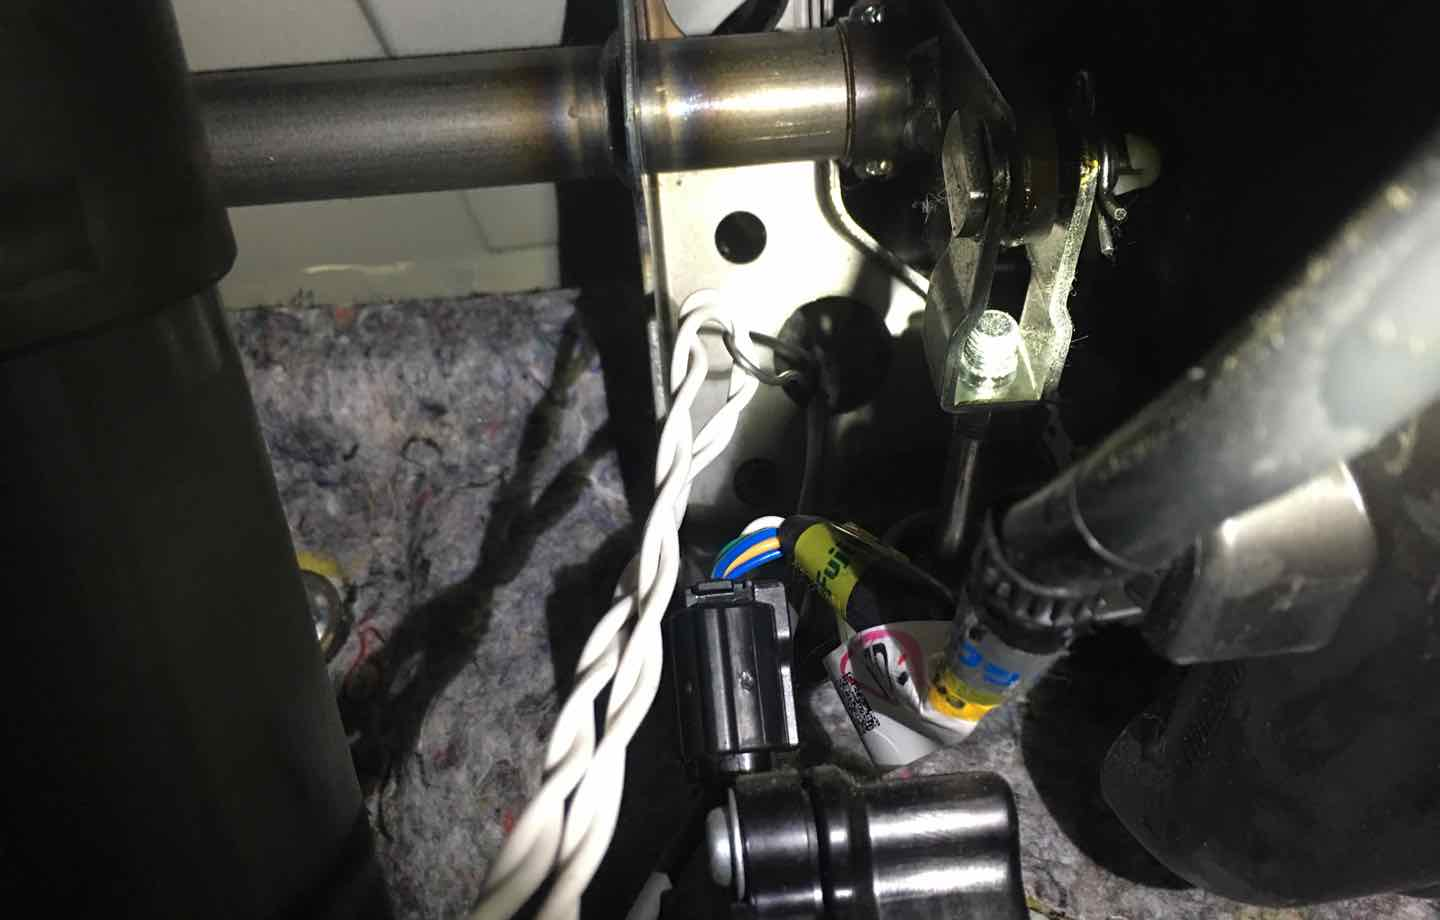 Diy Holiday Car Wreath Christmas Light Source Wiring A On Loop Next Is Photo Of Fishing The Cord Through With Wire You Start In Engine Compartment To Interior And Use